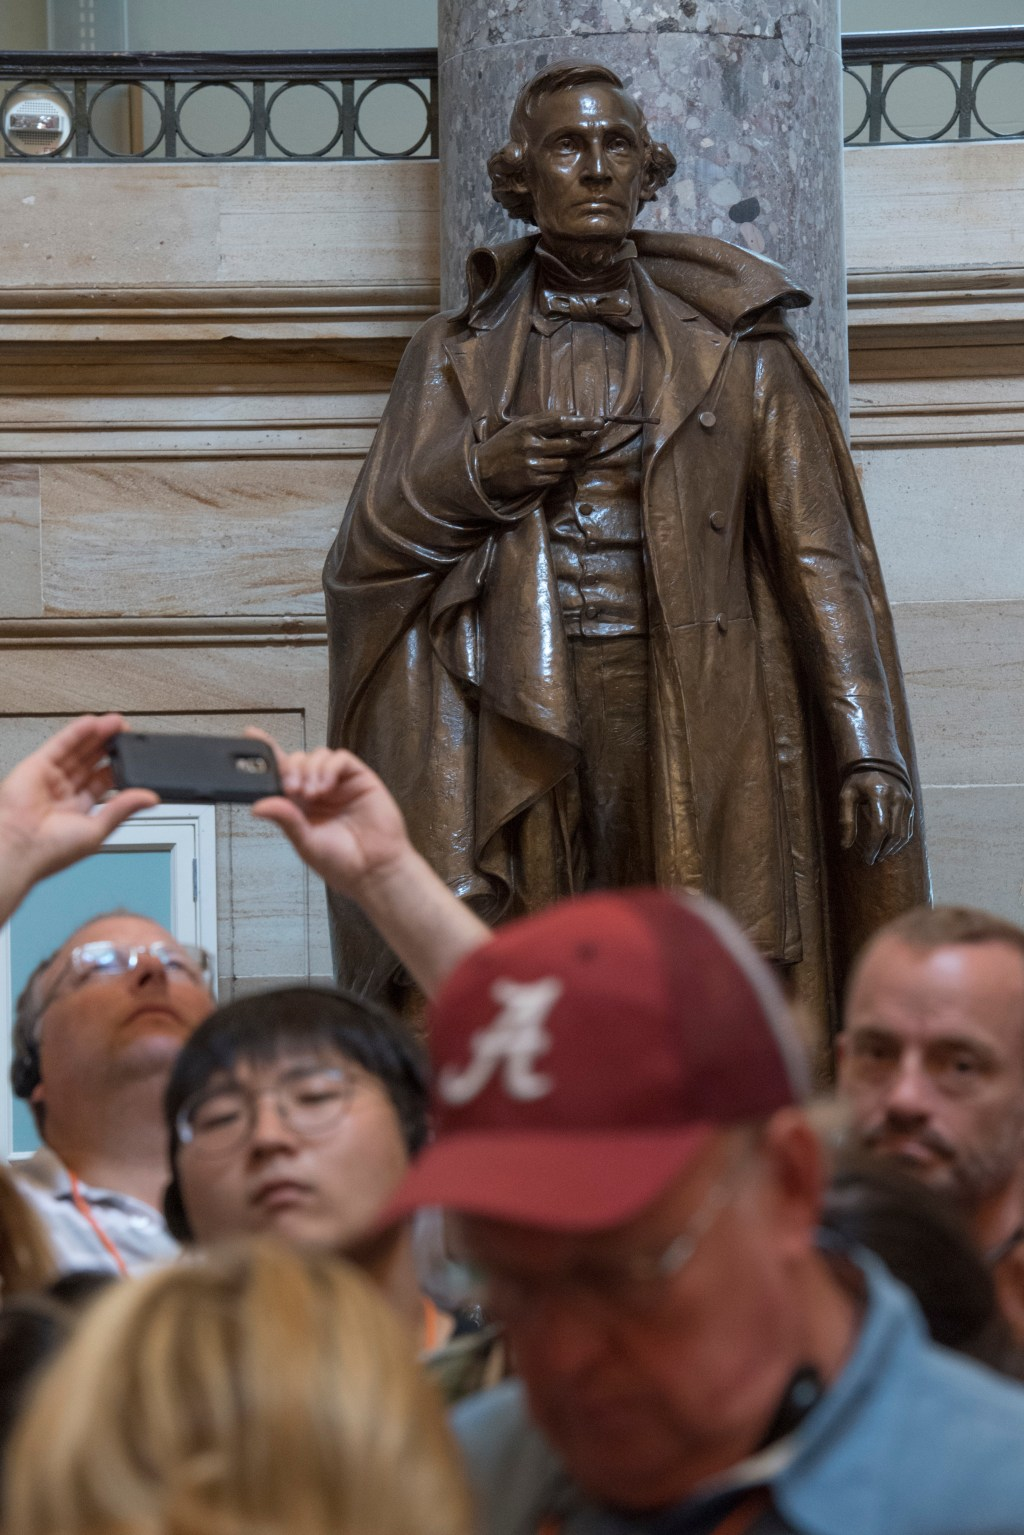 UNITED STATES - AUGUST 17: A statue of Jefferson Davis who was president of the Confederacy, is on display in the Capitol's Statuary Hall on August 17, 2017. (Photo By Tom Williams/CQ Roll Call)